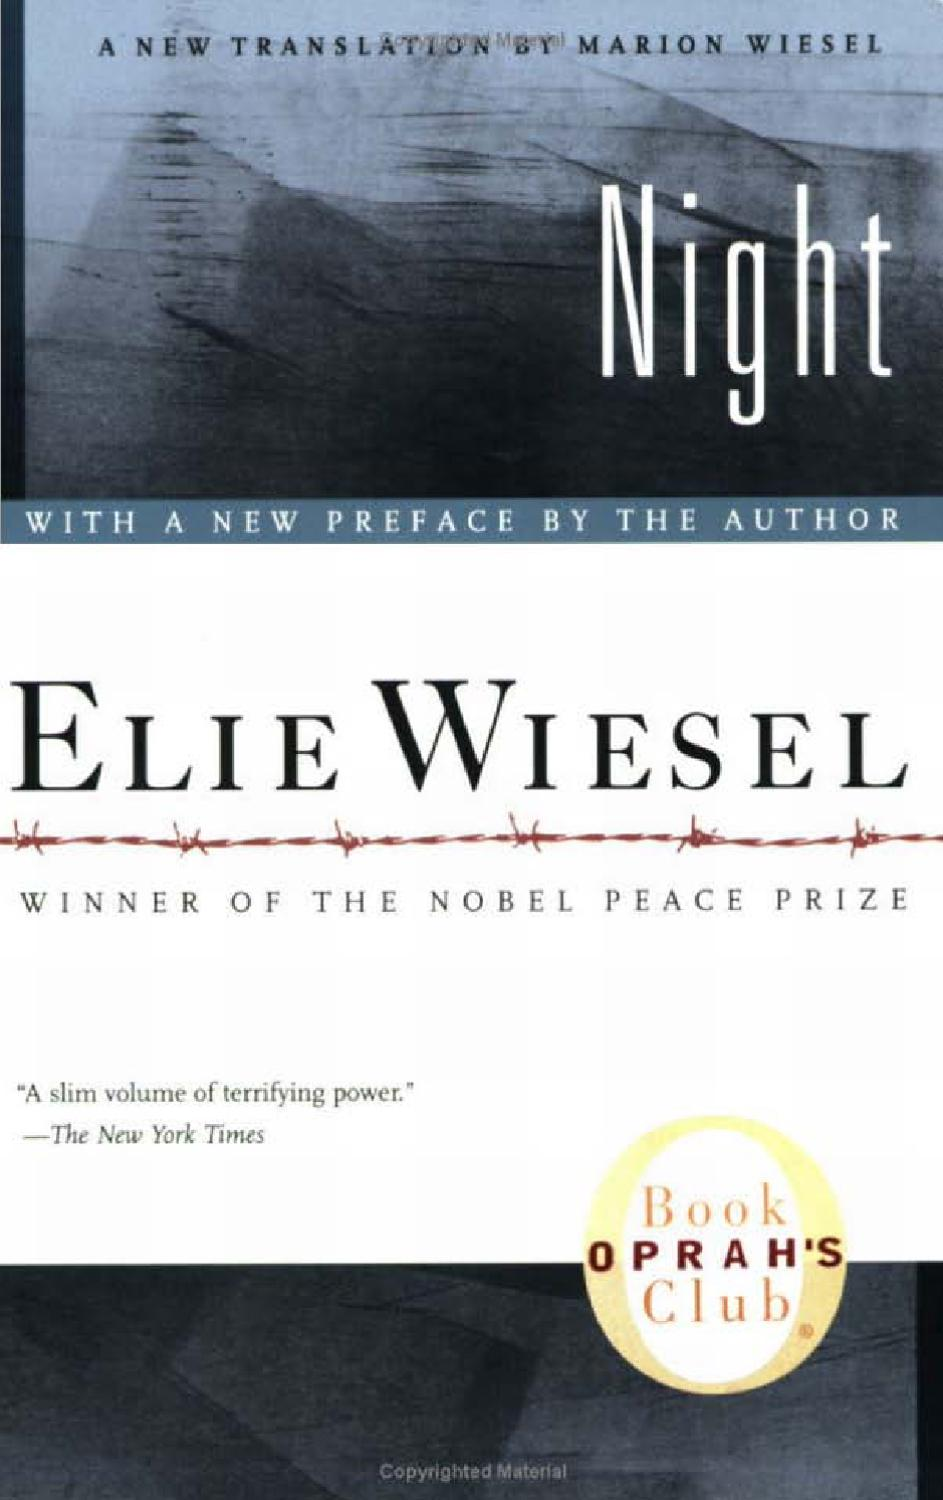 Night is a work by Elie Wiesel